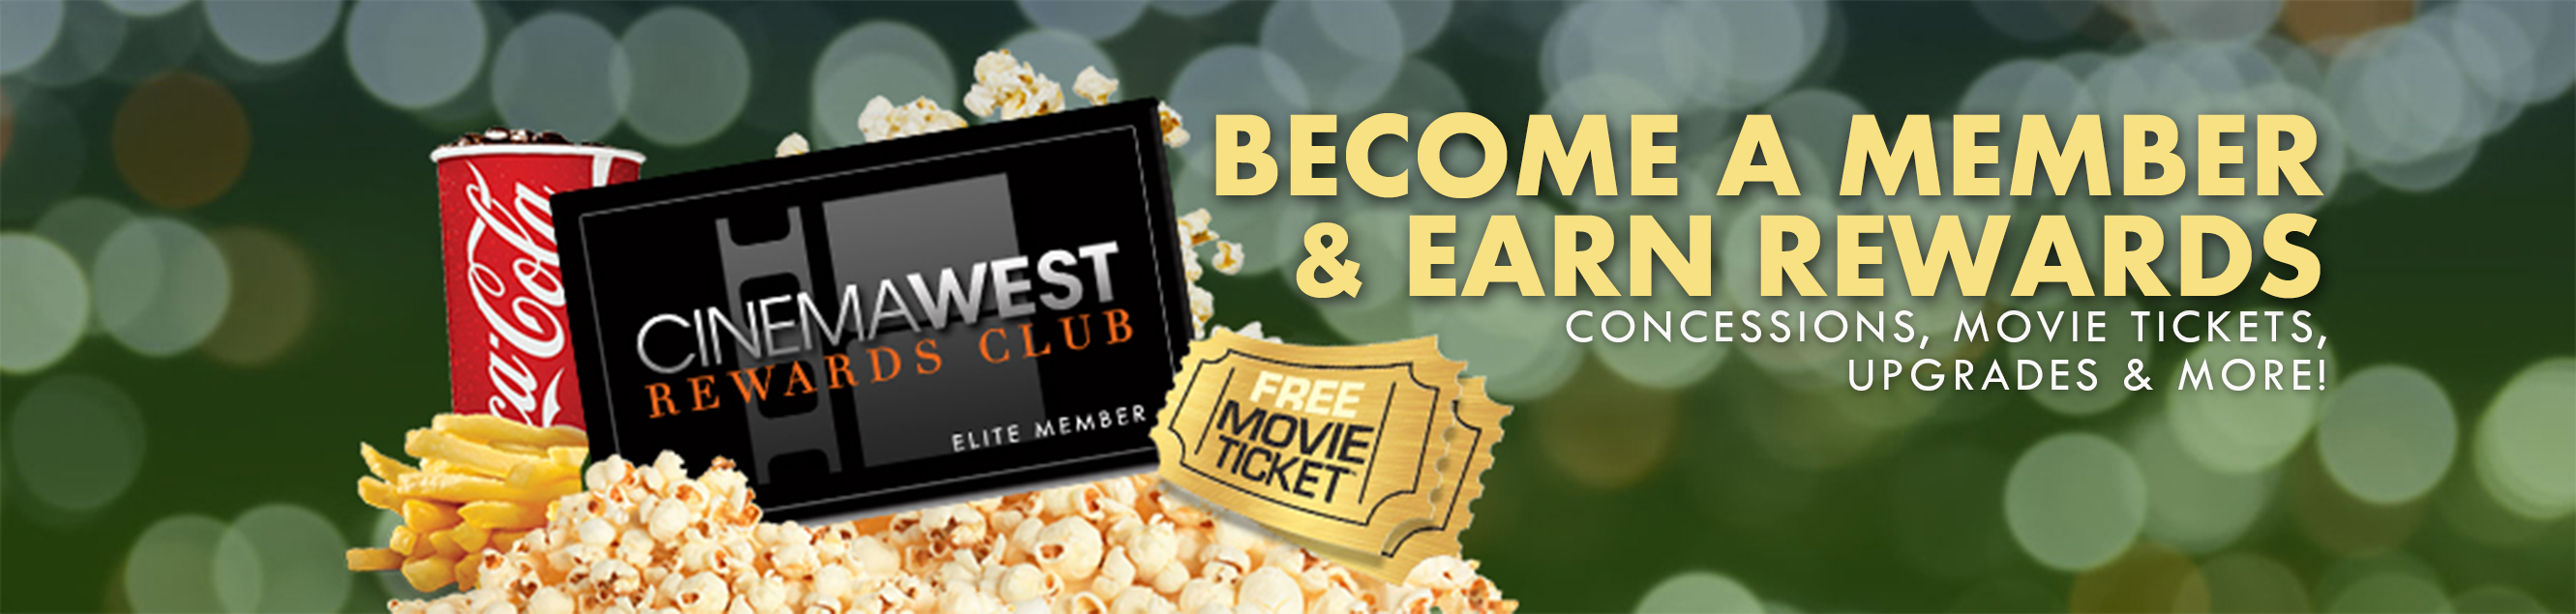 Become a Rewards Club and earn rewards for concessions, movie tickets, upgrades and more!